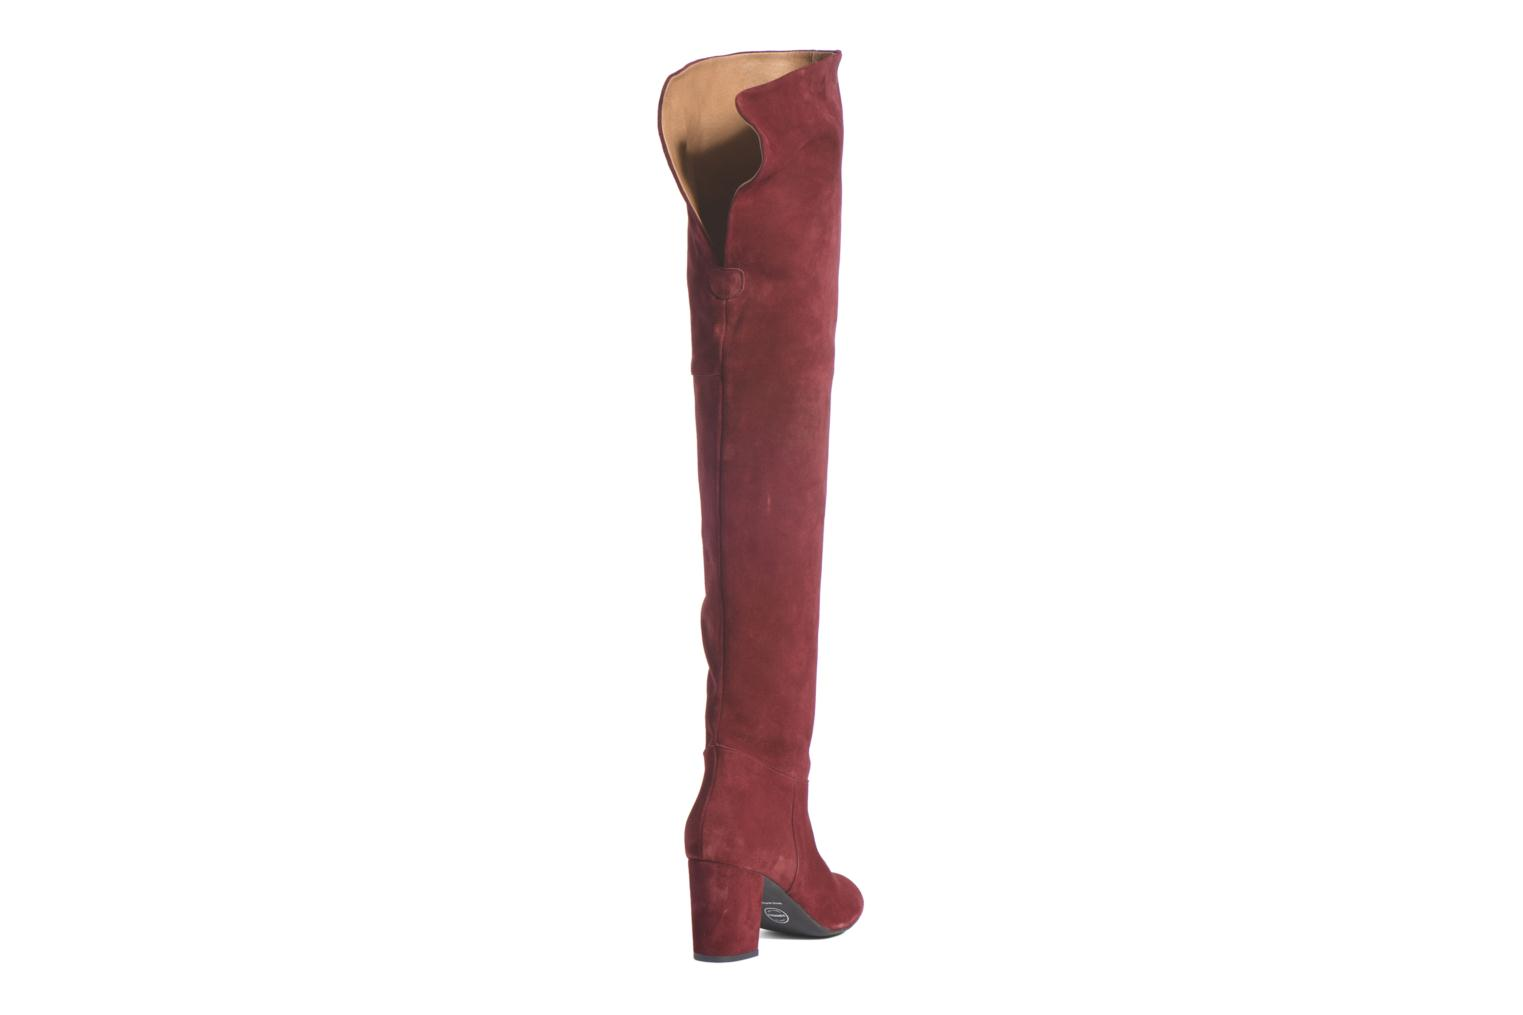 Made Bordeaux Sarenza Boots Yecla By Camp13 Croute A3Rqc54jL